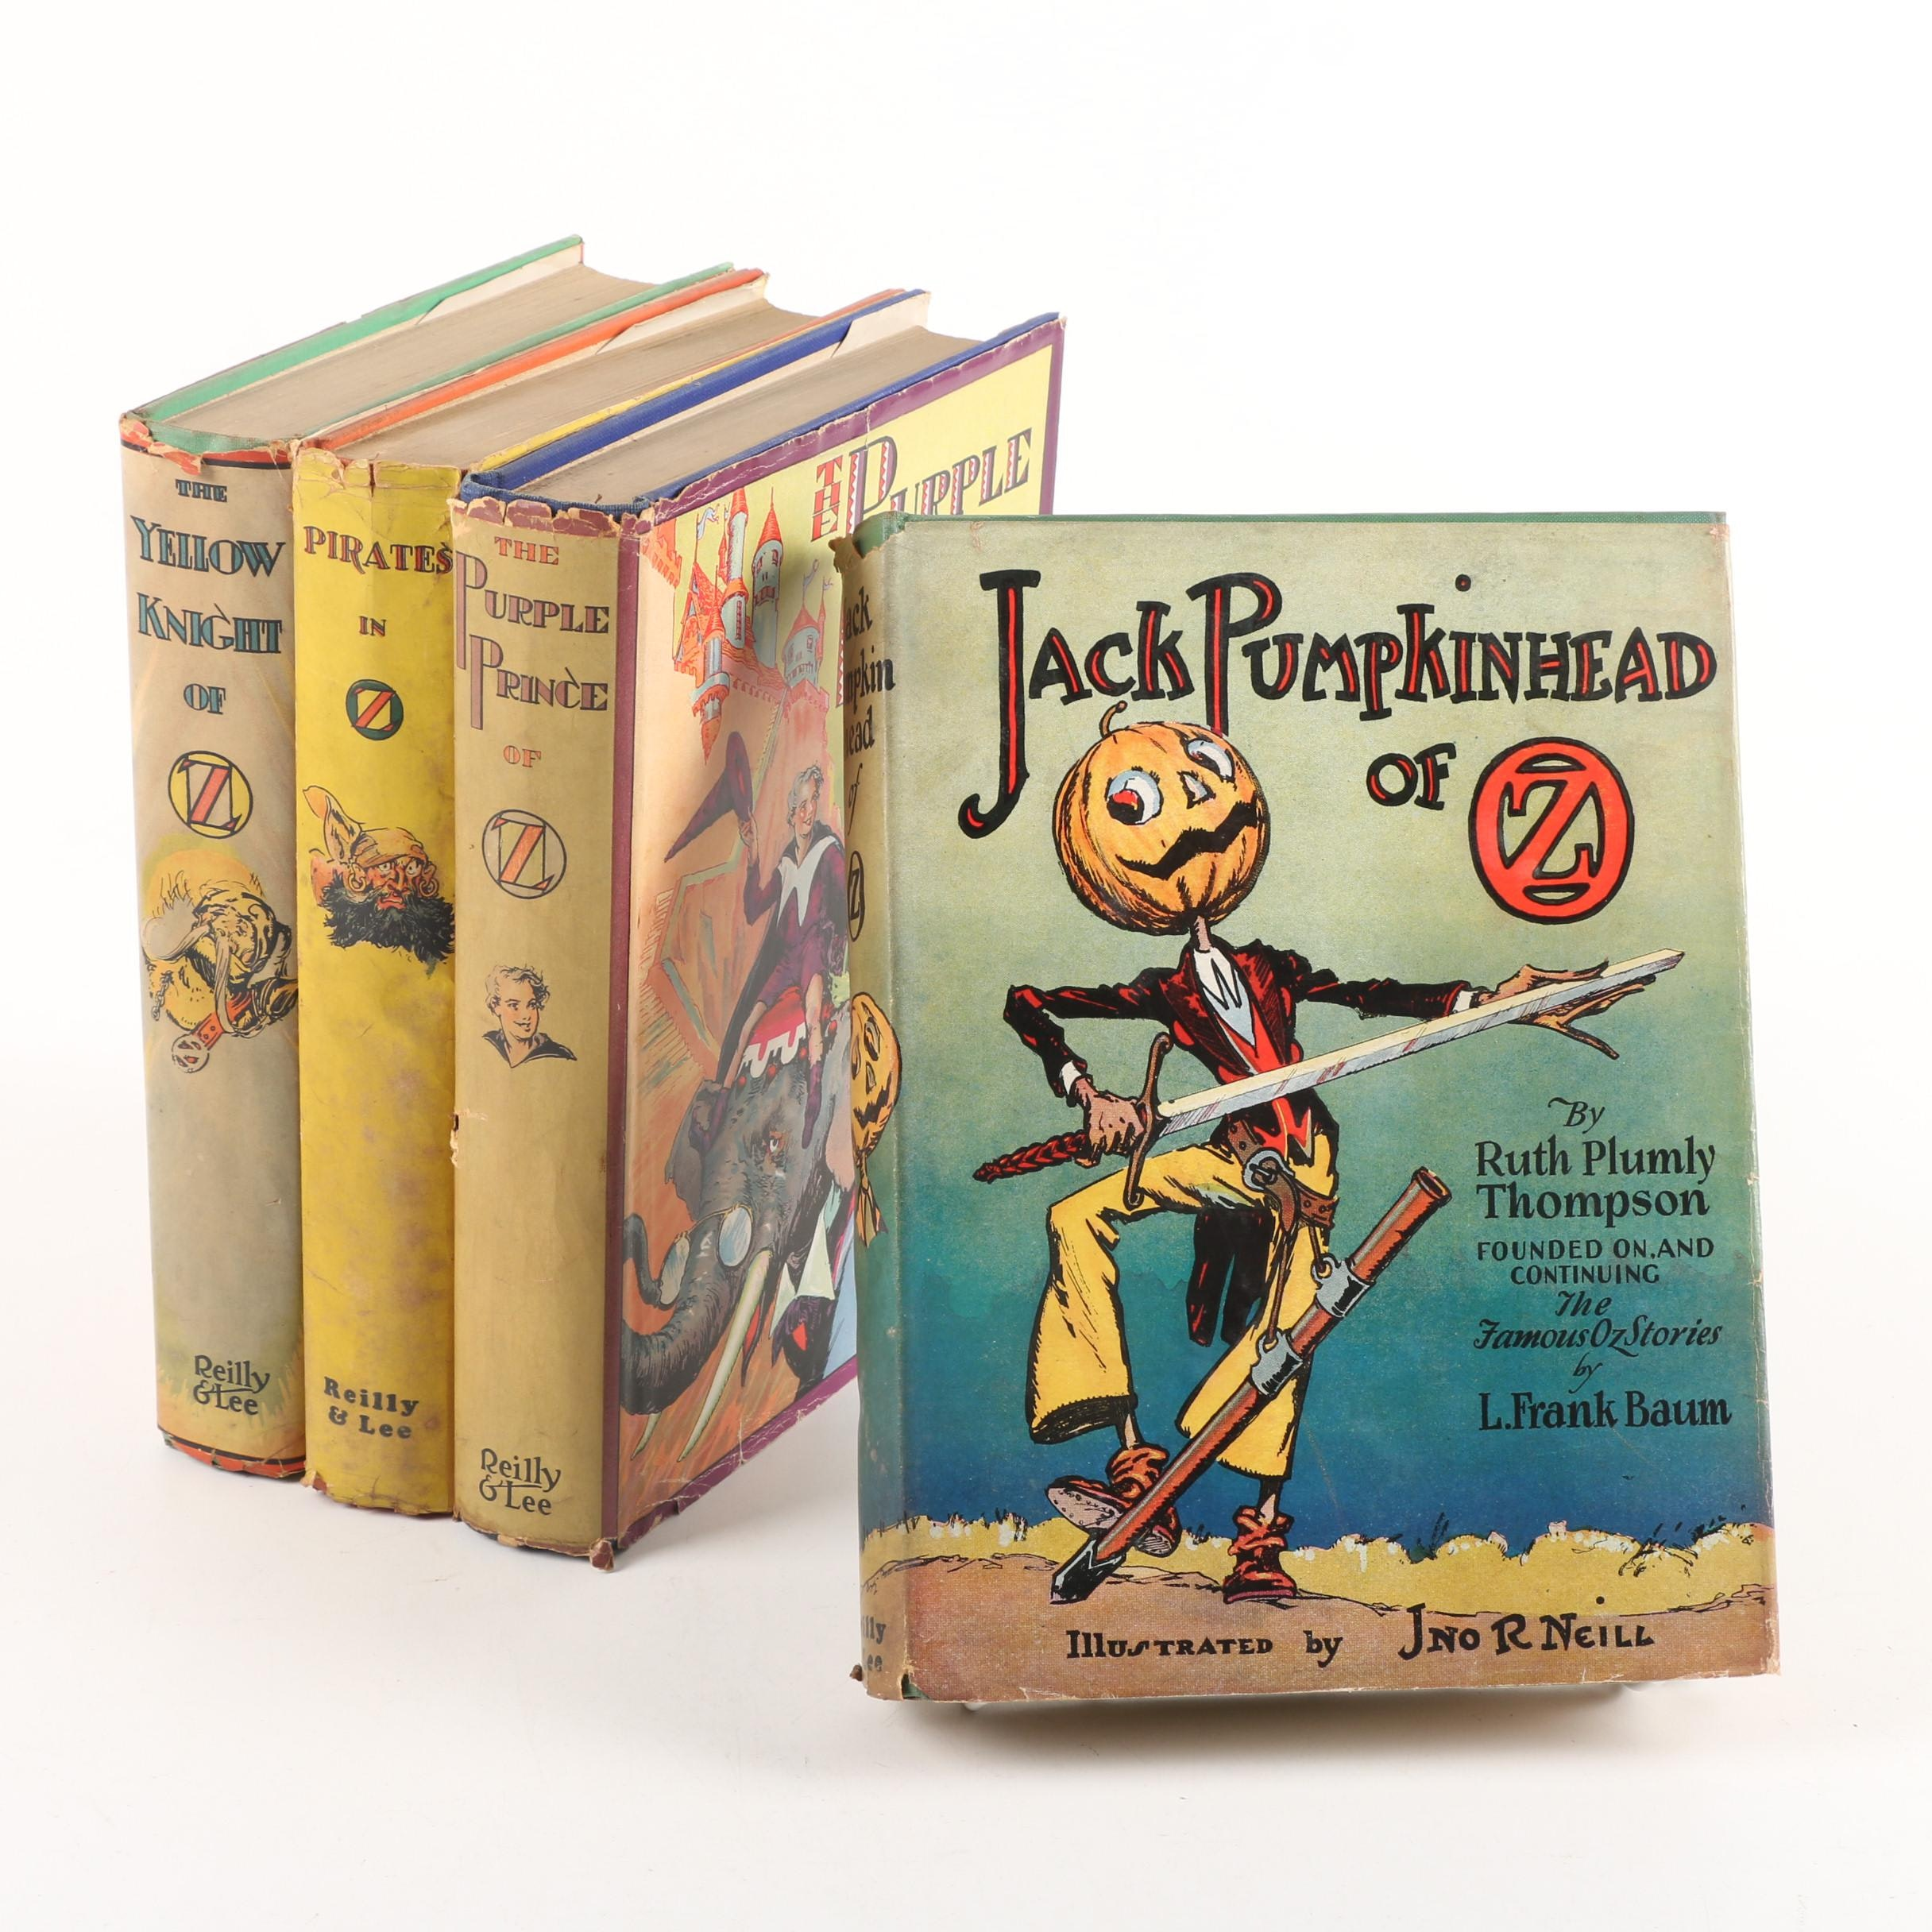 """Vintage """"Oz"""" Books by Ruth Plumly Thompson Including """"The Yellow Knight of Oz"""""""